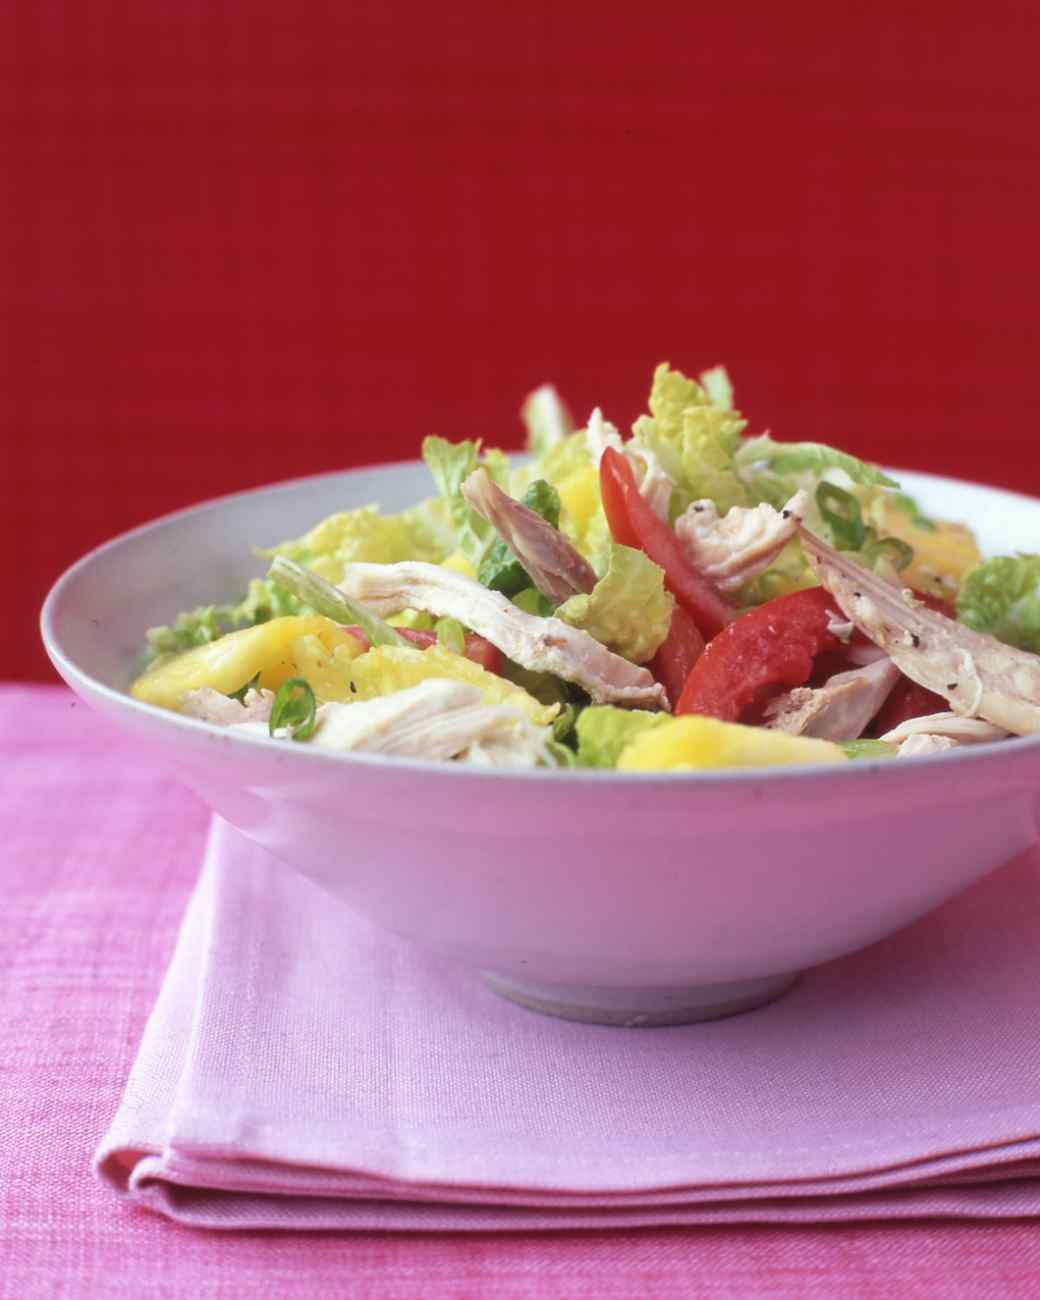 Chicken And Pineapple Salad Delicious Chicken Salad Pineapple Salad Recipes Chicken Salad Recipes